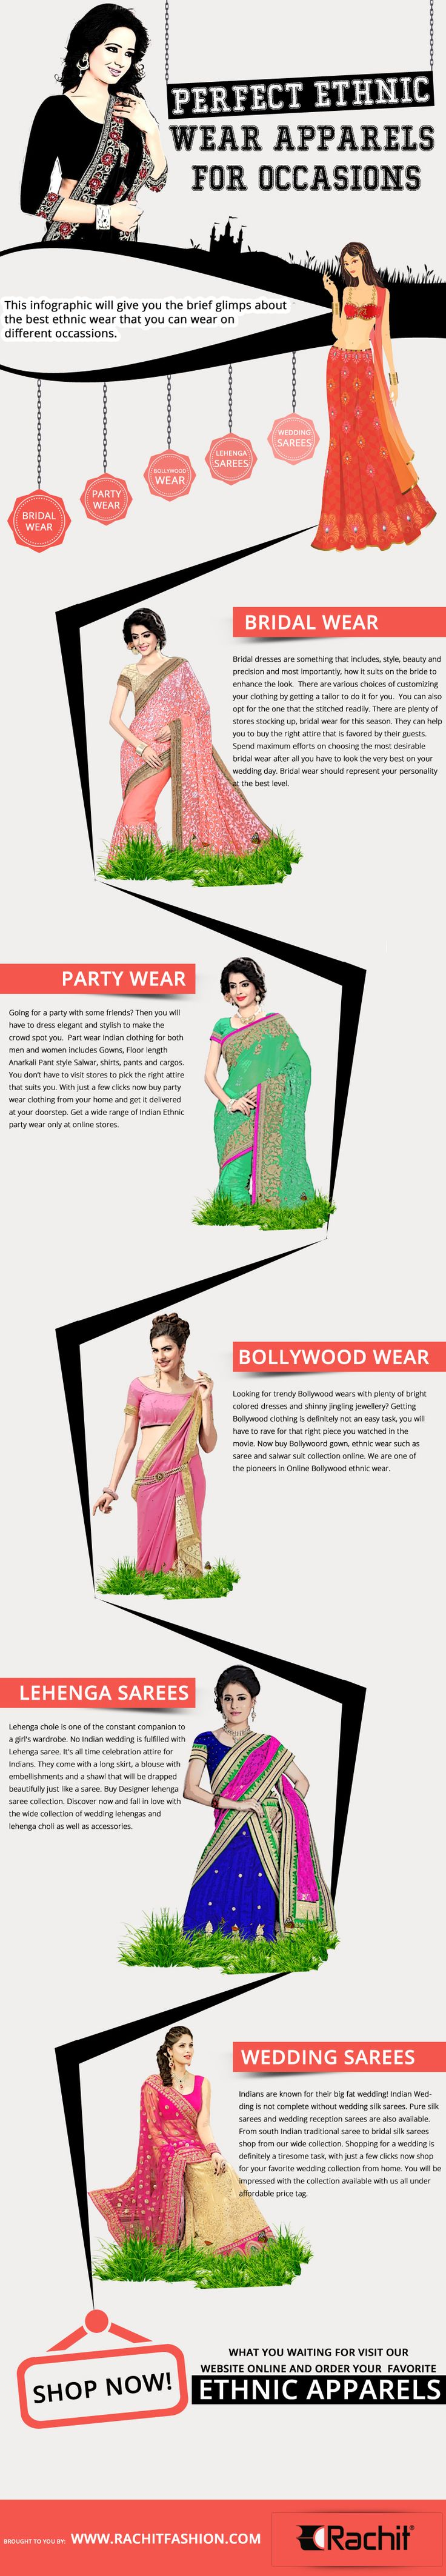 Perfect Ethnic Wear Apparels for Occasions.  #ethnicwear #apparels #womensfashion #clothing